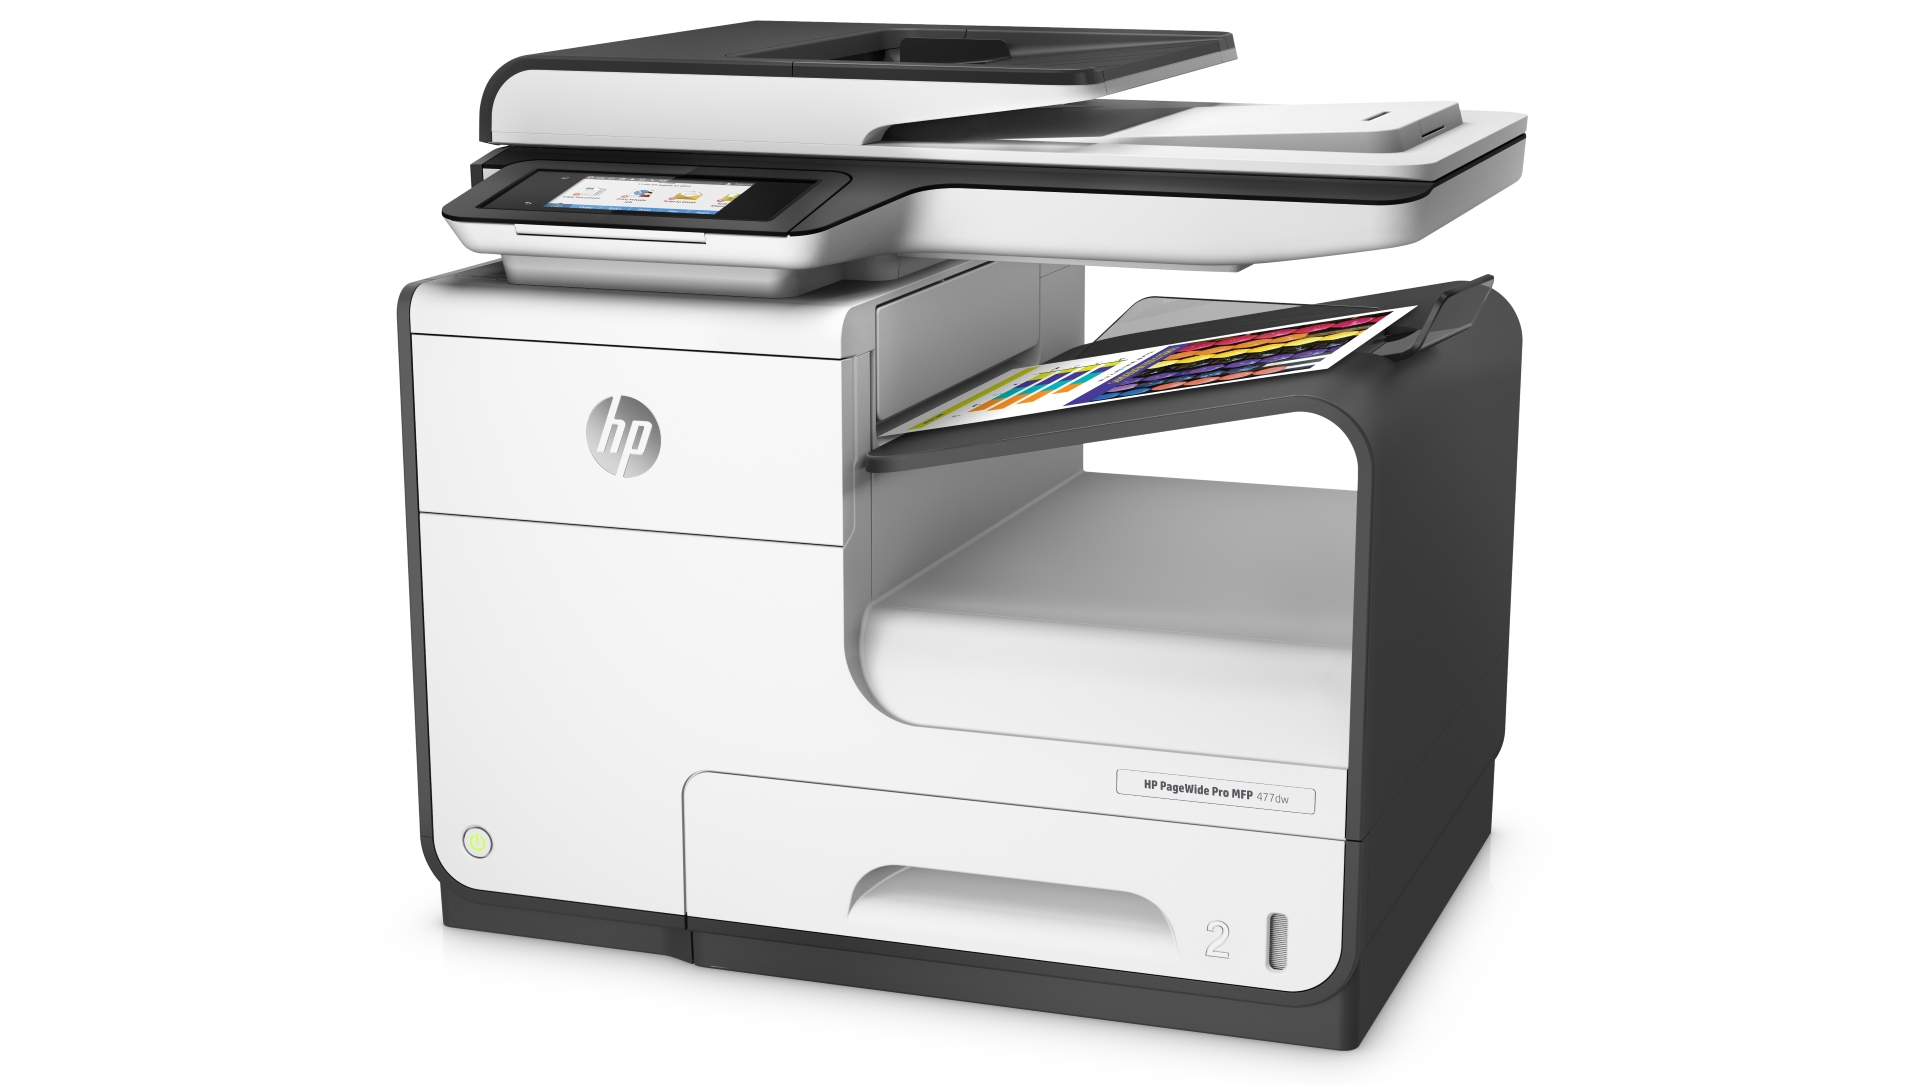 Best printer 2018: The best inkjet and laser printers for office ...